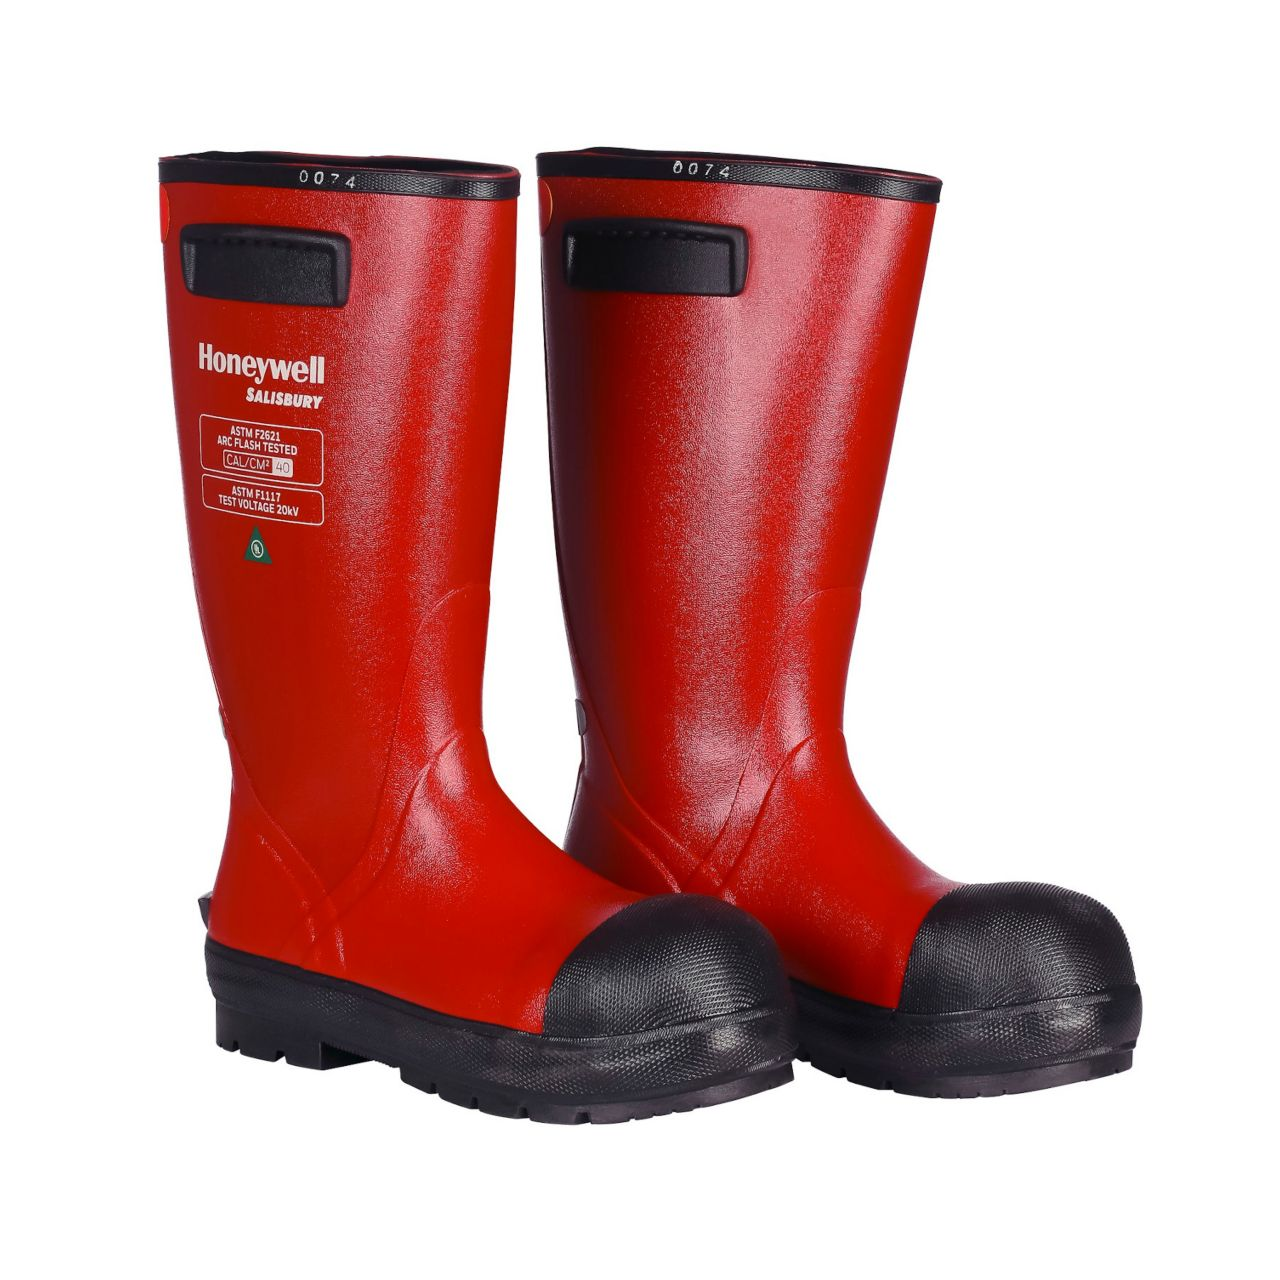 sps-his-electrigrip-boots-standard-pair